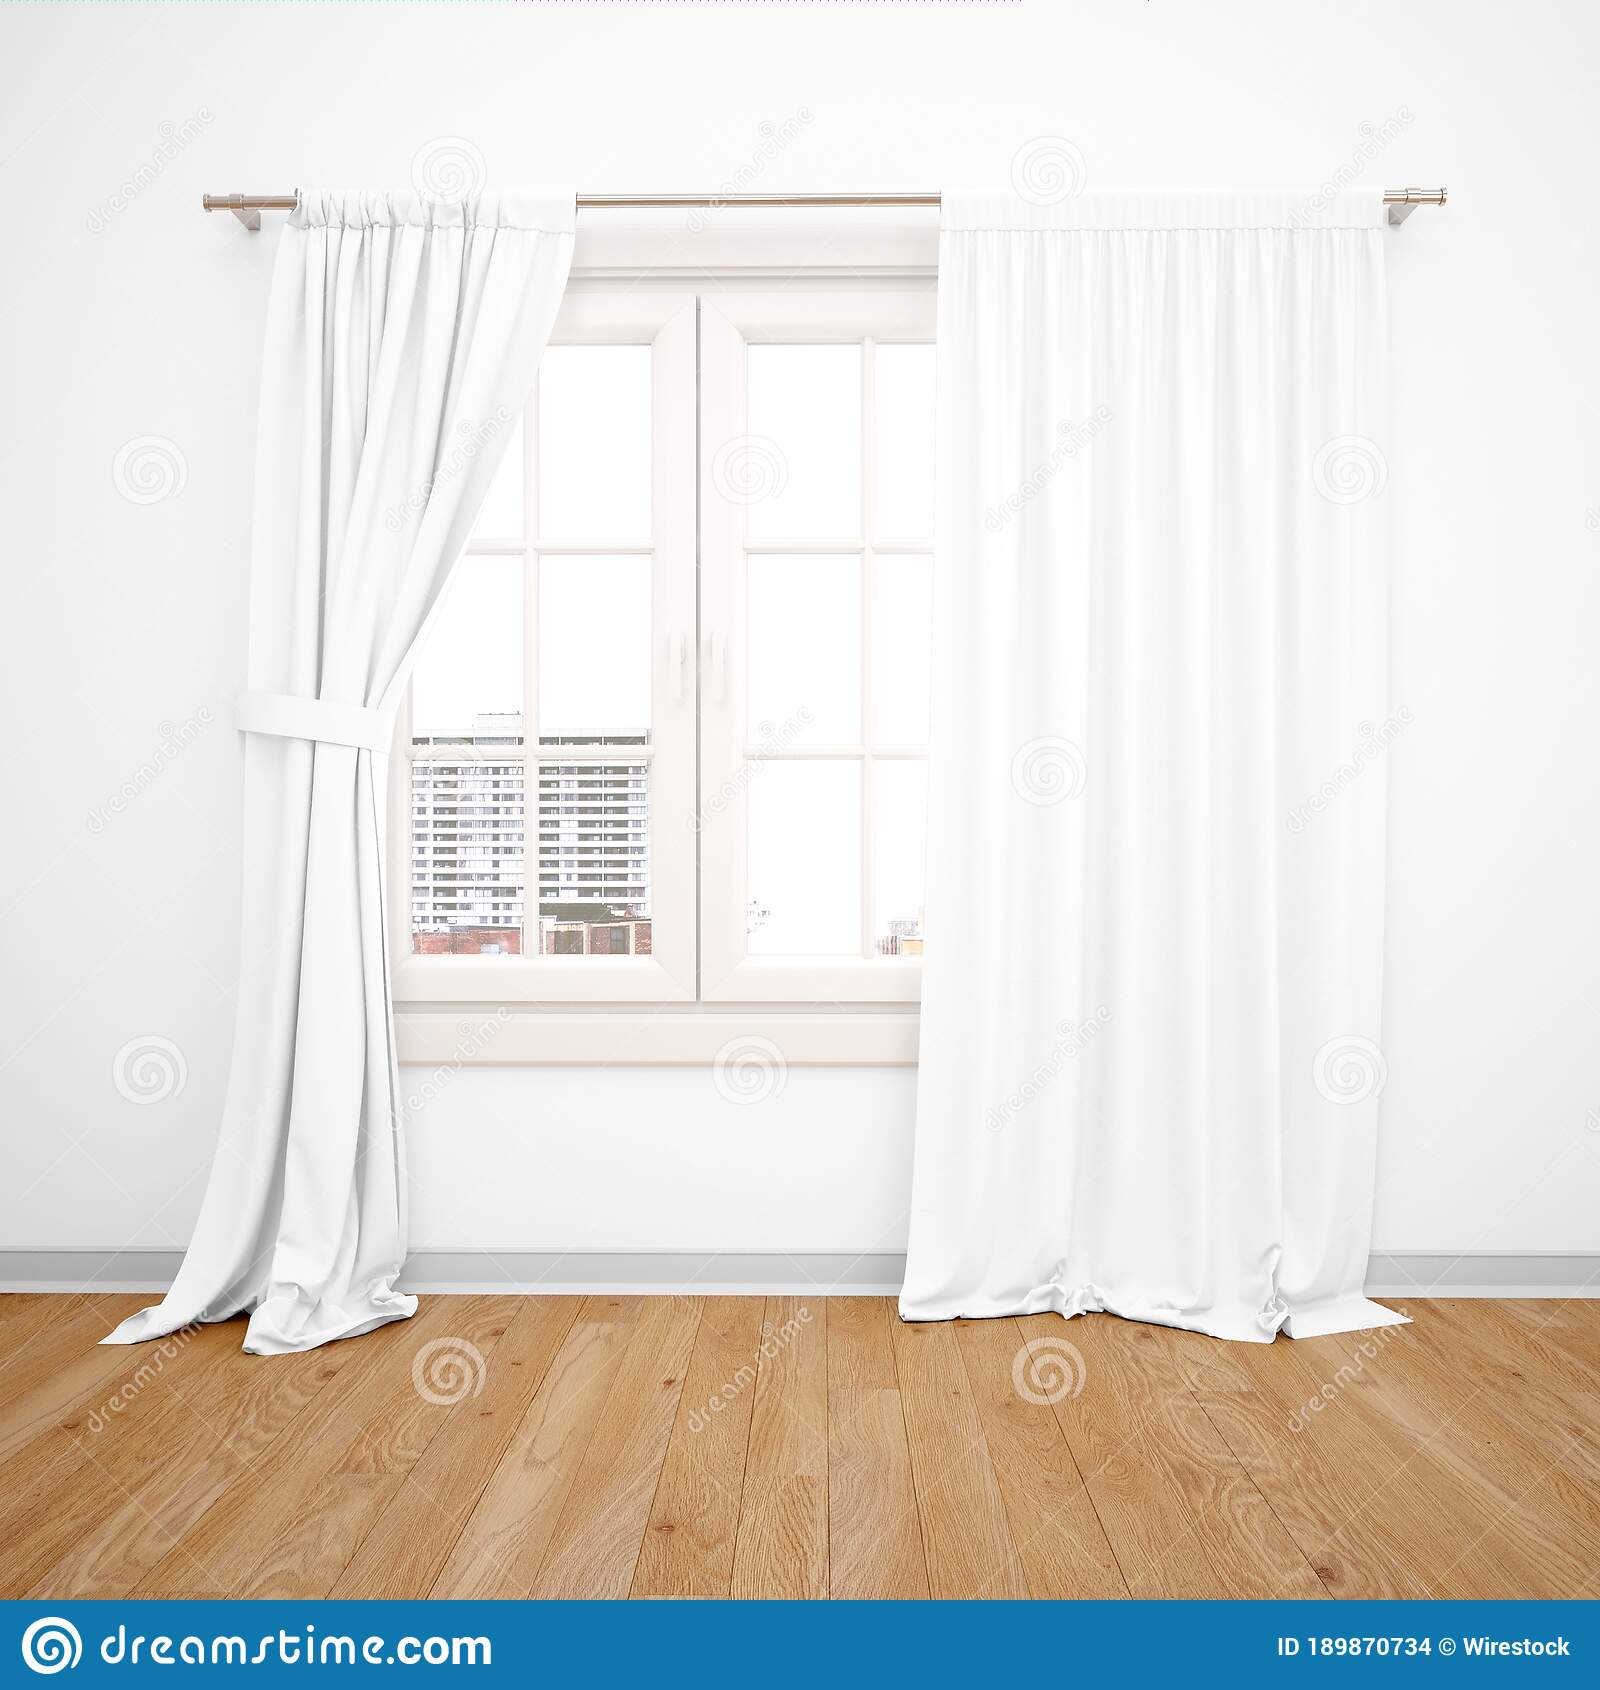 3d Rendering Of White Windows With Long Curtains Over It Under The Lights Stock Illustration Illustration Of Room Construction 189870734